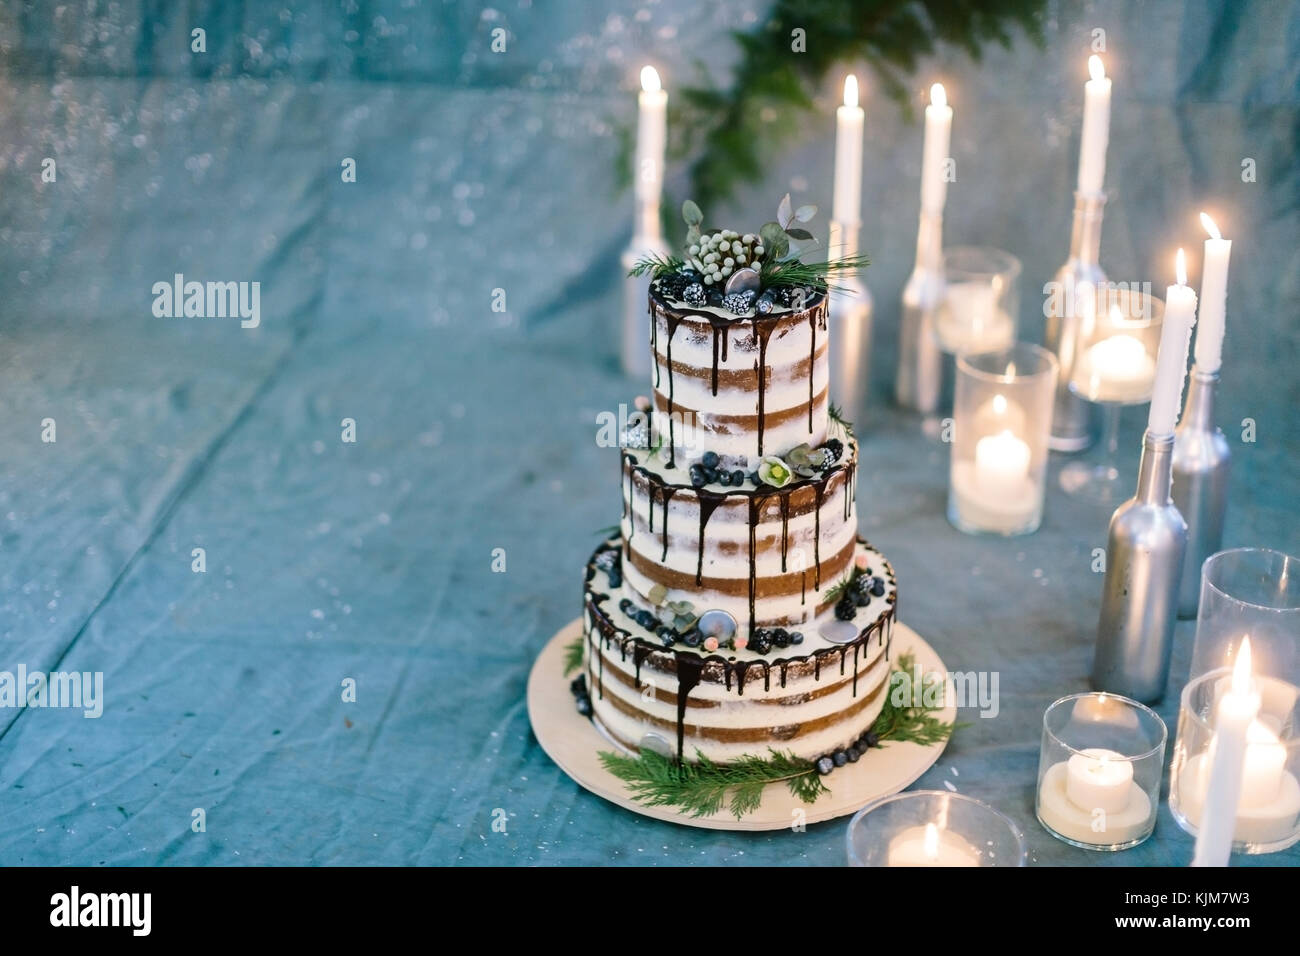 confectionary, dessert, party concept. marvelous cake composed of three tiers, all of them carefully decorated with Stock Photo